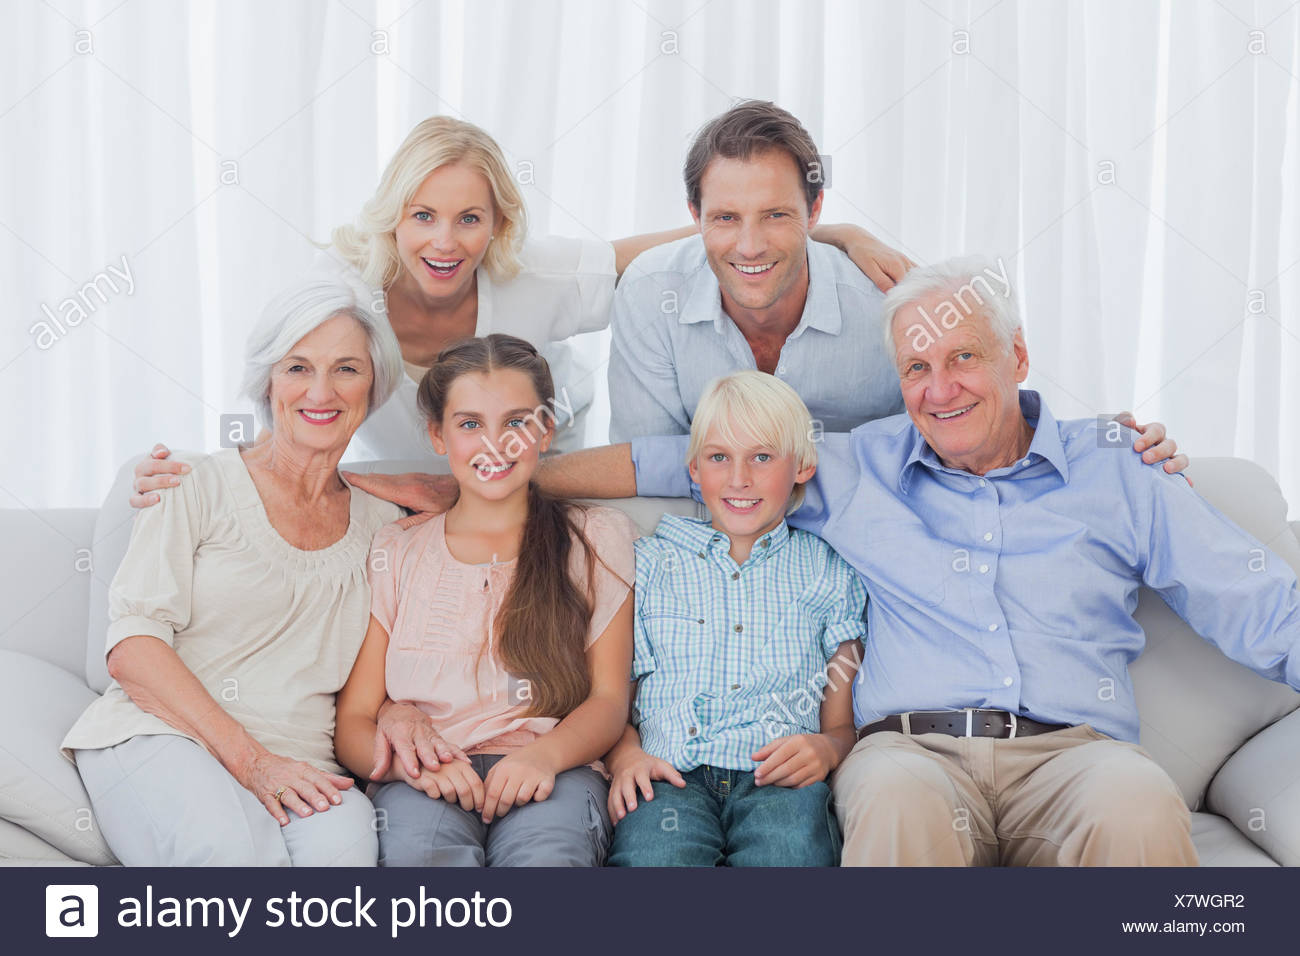 Extended family sitting together on couch - Stock Image